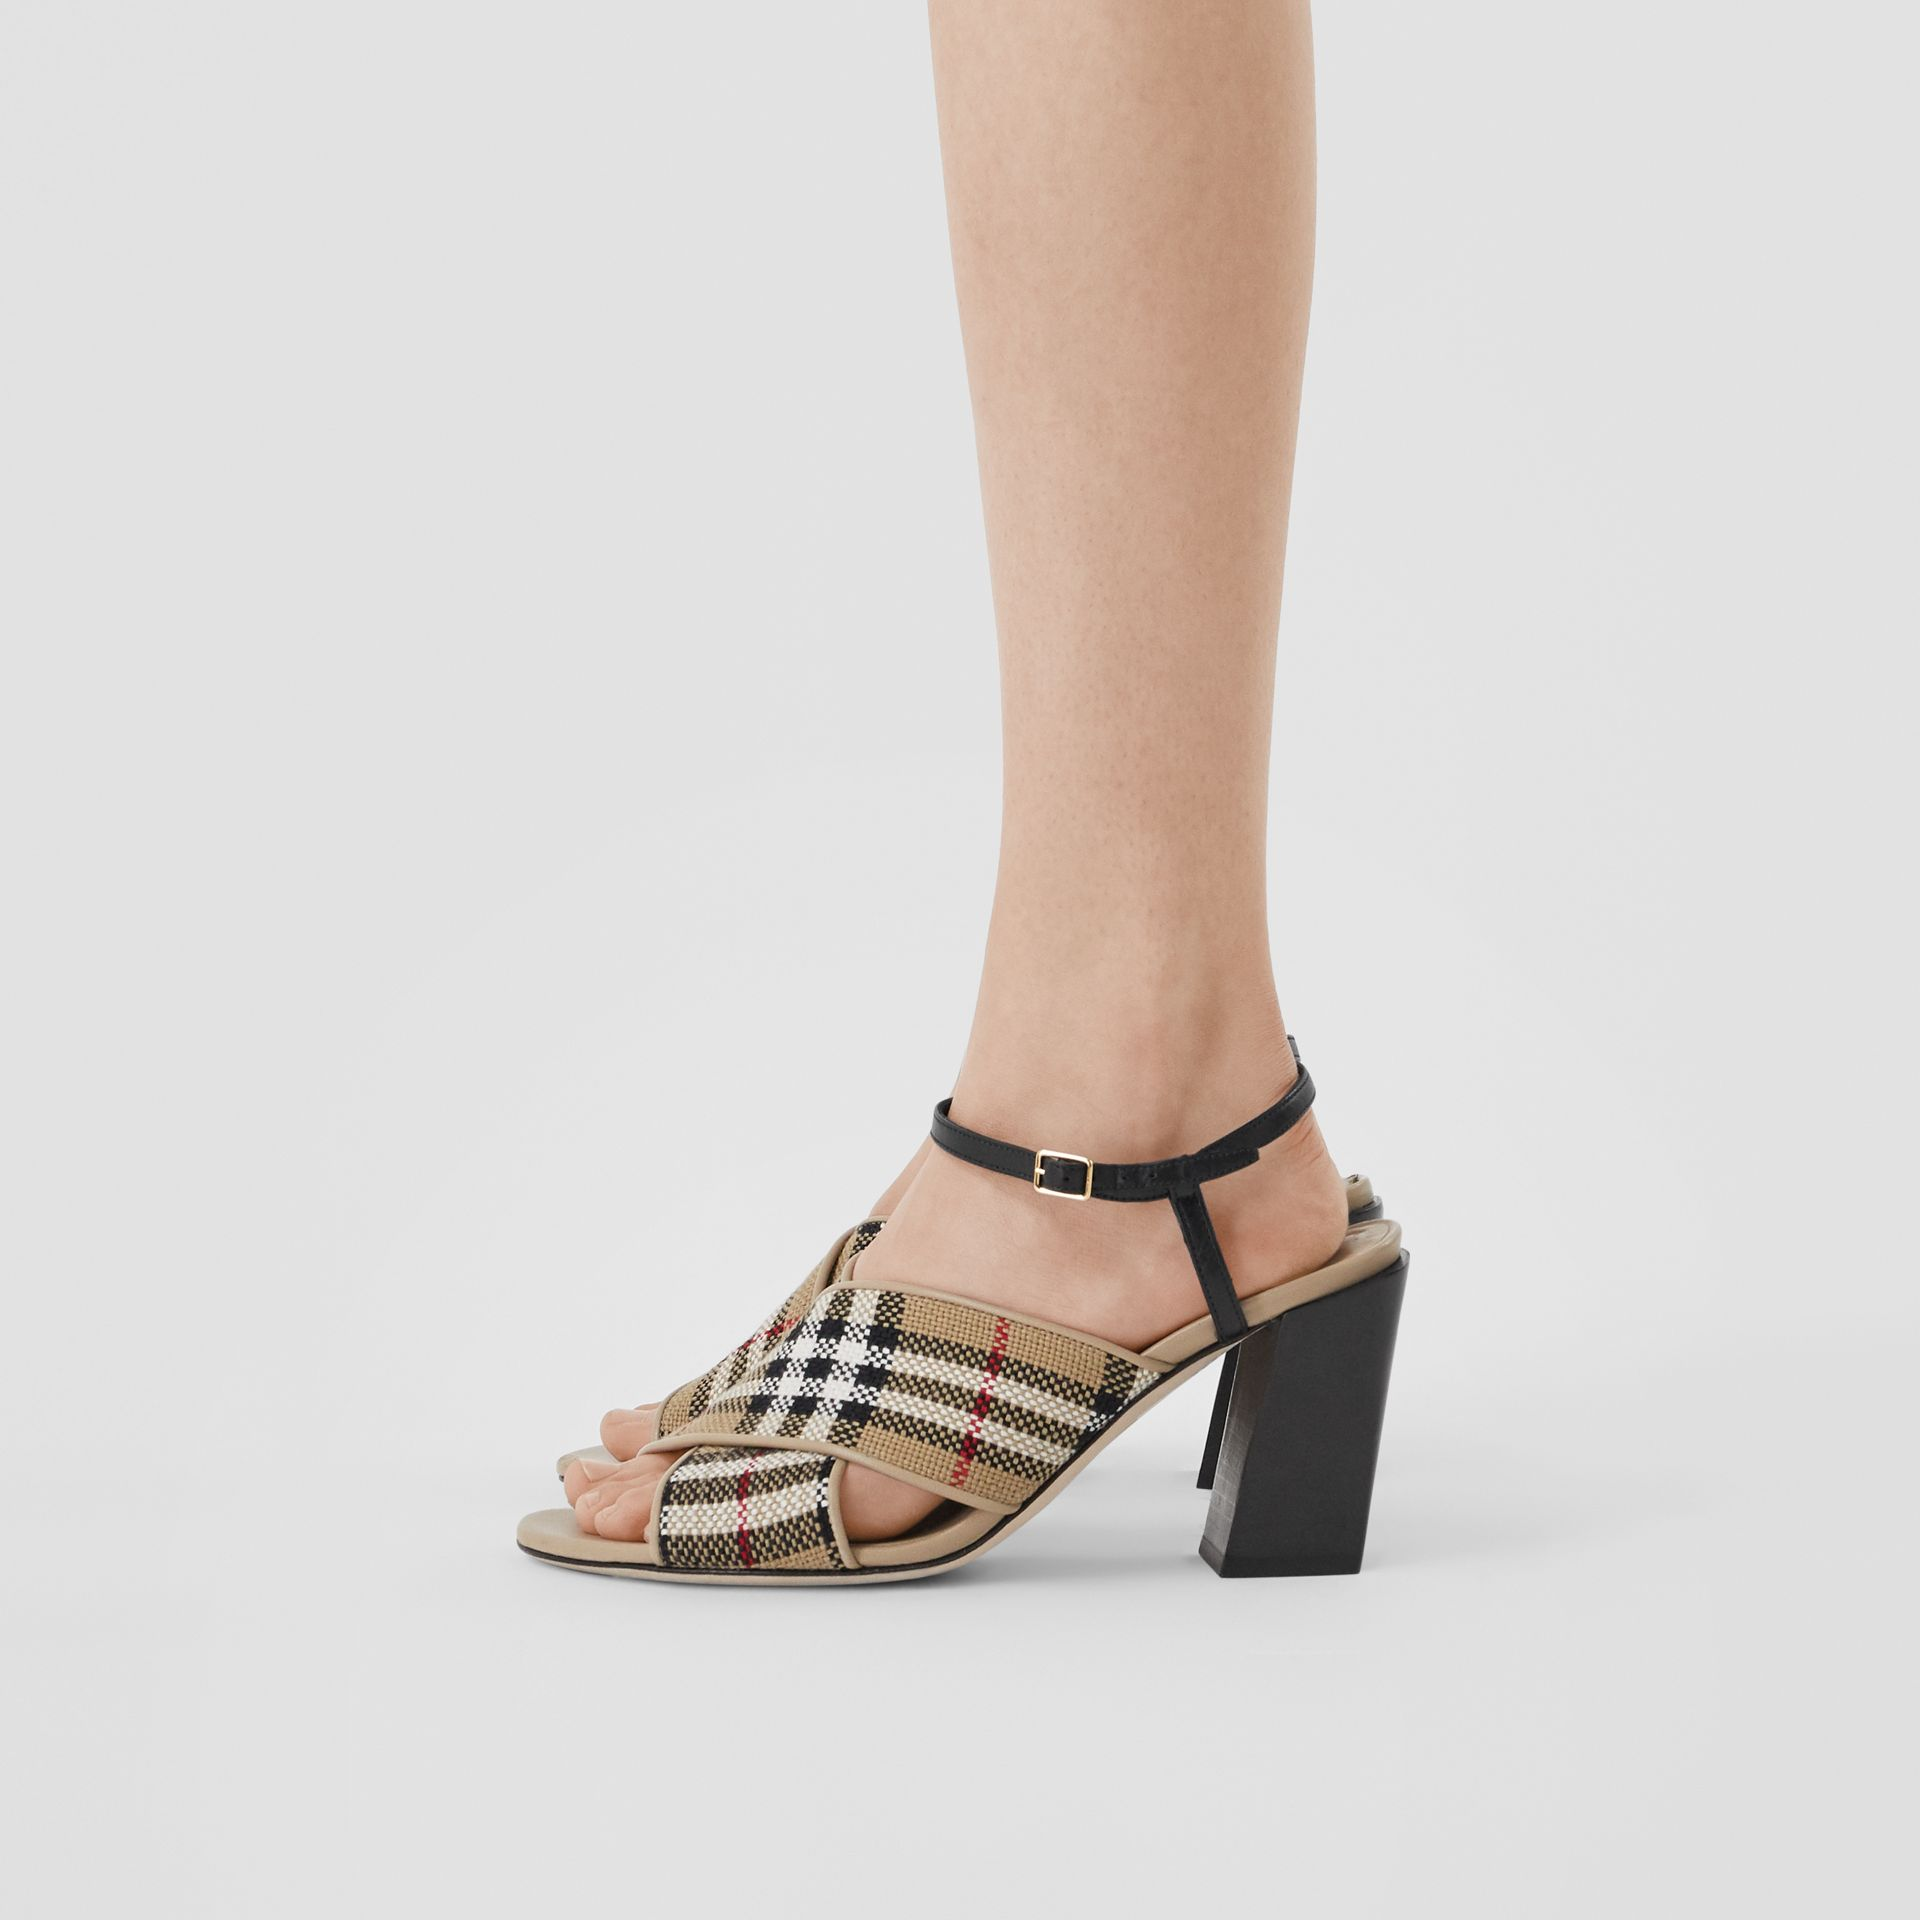 Latticed Cotton and Leather Block-heel Sandals in Archive Beige/black - Women | Burberry United Kingdom - gallery image 2